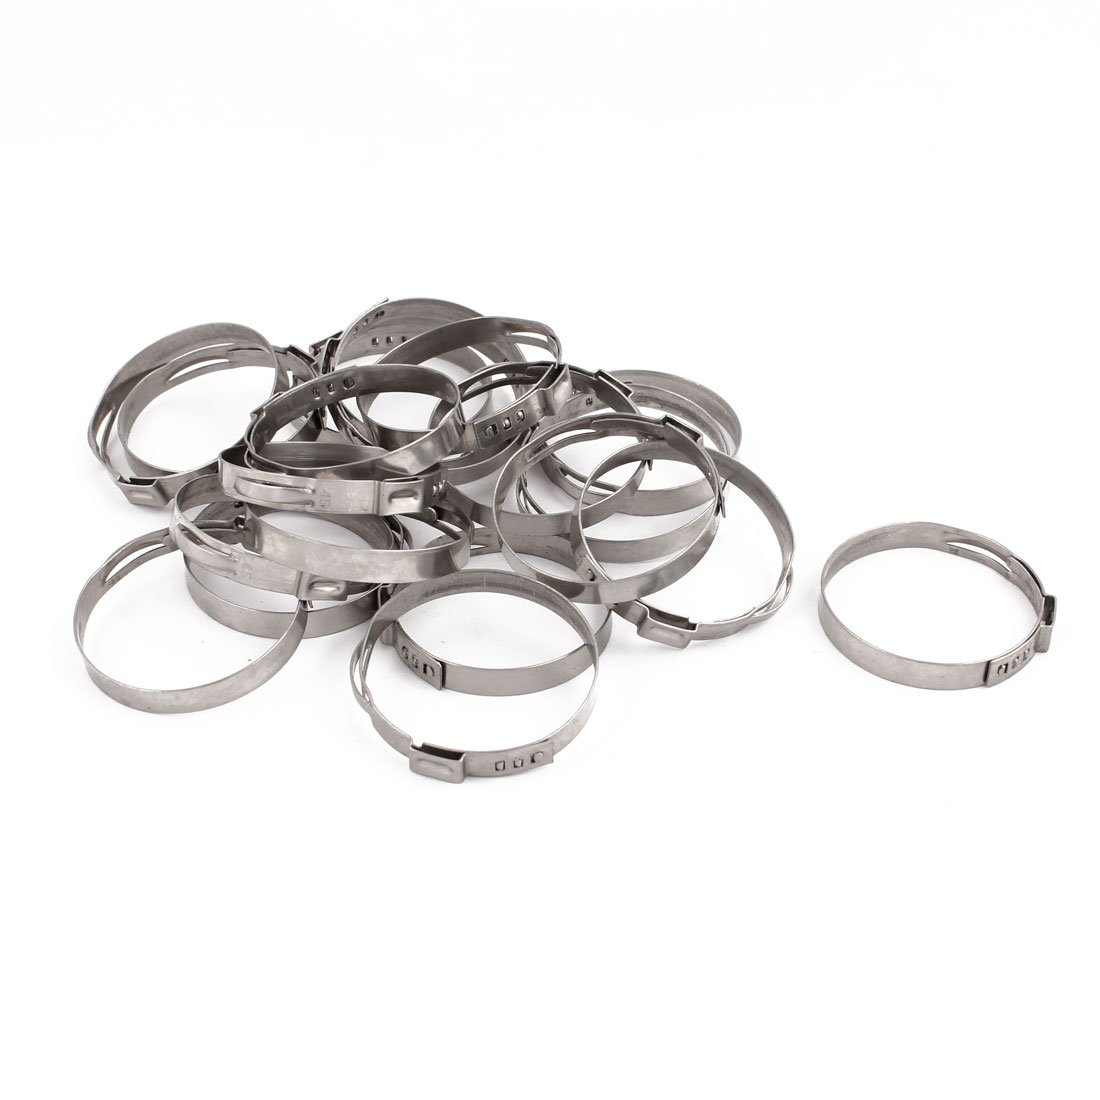 uxcell 41.8mm-45mm 304 Stainless Steel Adjustable Tube Hose Clamps Silver Tone 20pcs